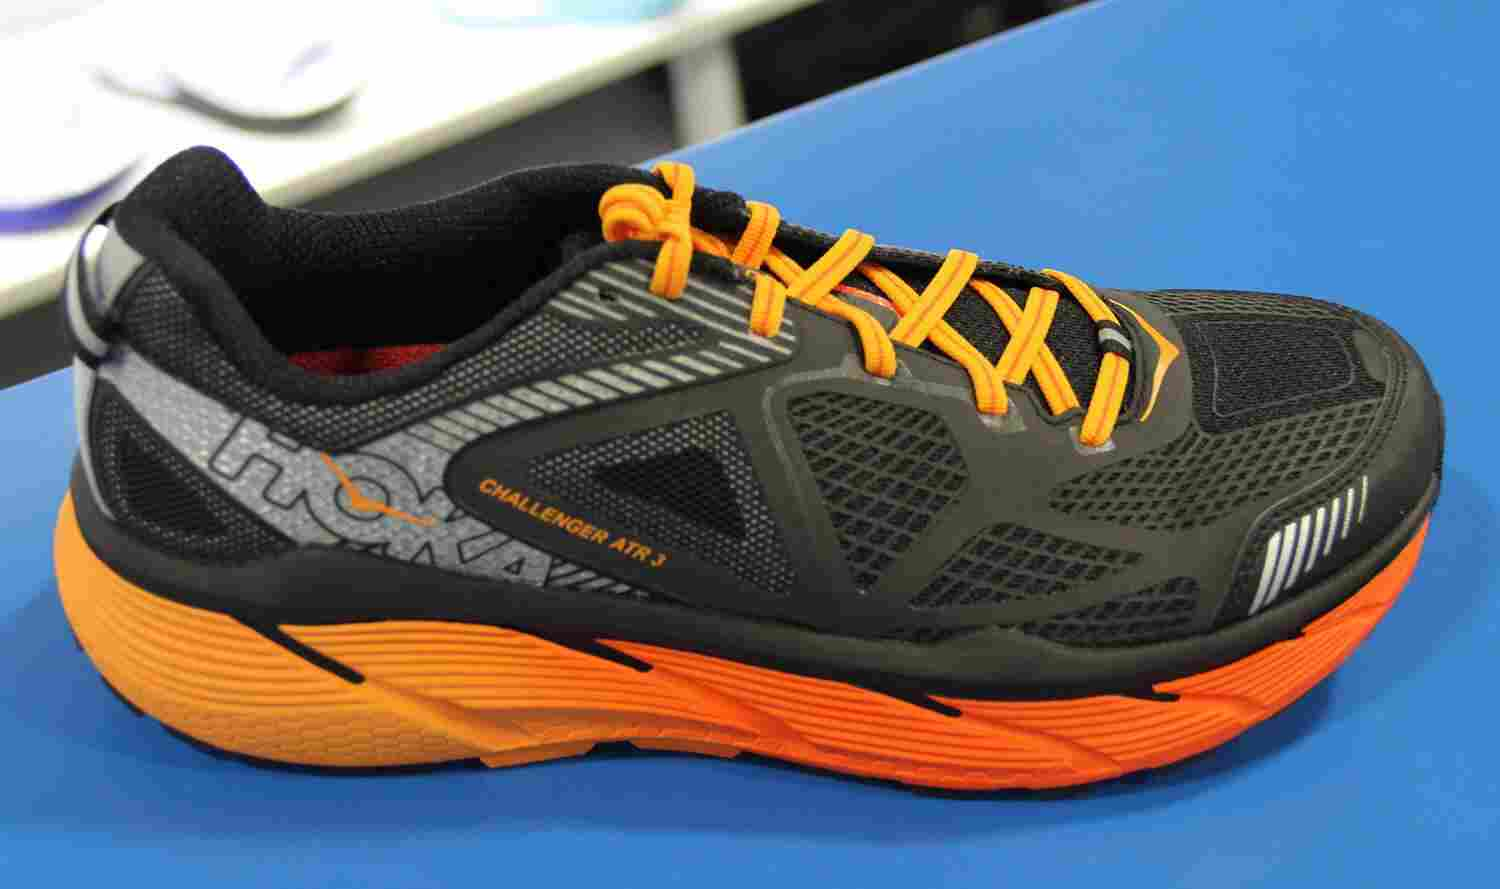 hoka-one-one-challenger-atr-3-product-showcase